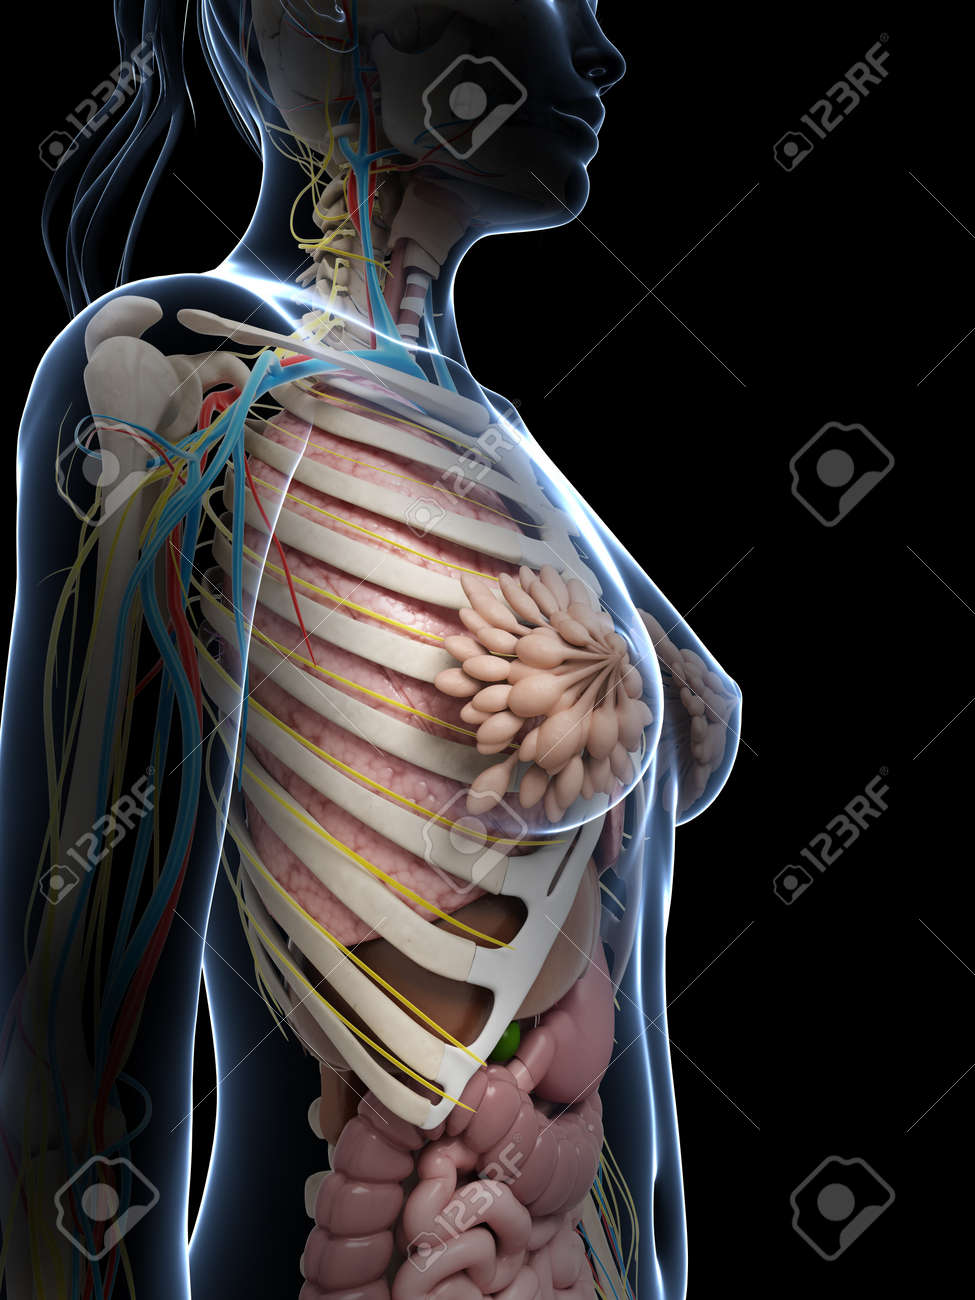 3d rendered illustration of the female anatomy Stock Photo - 18451366